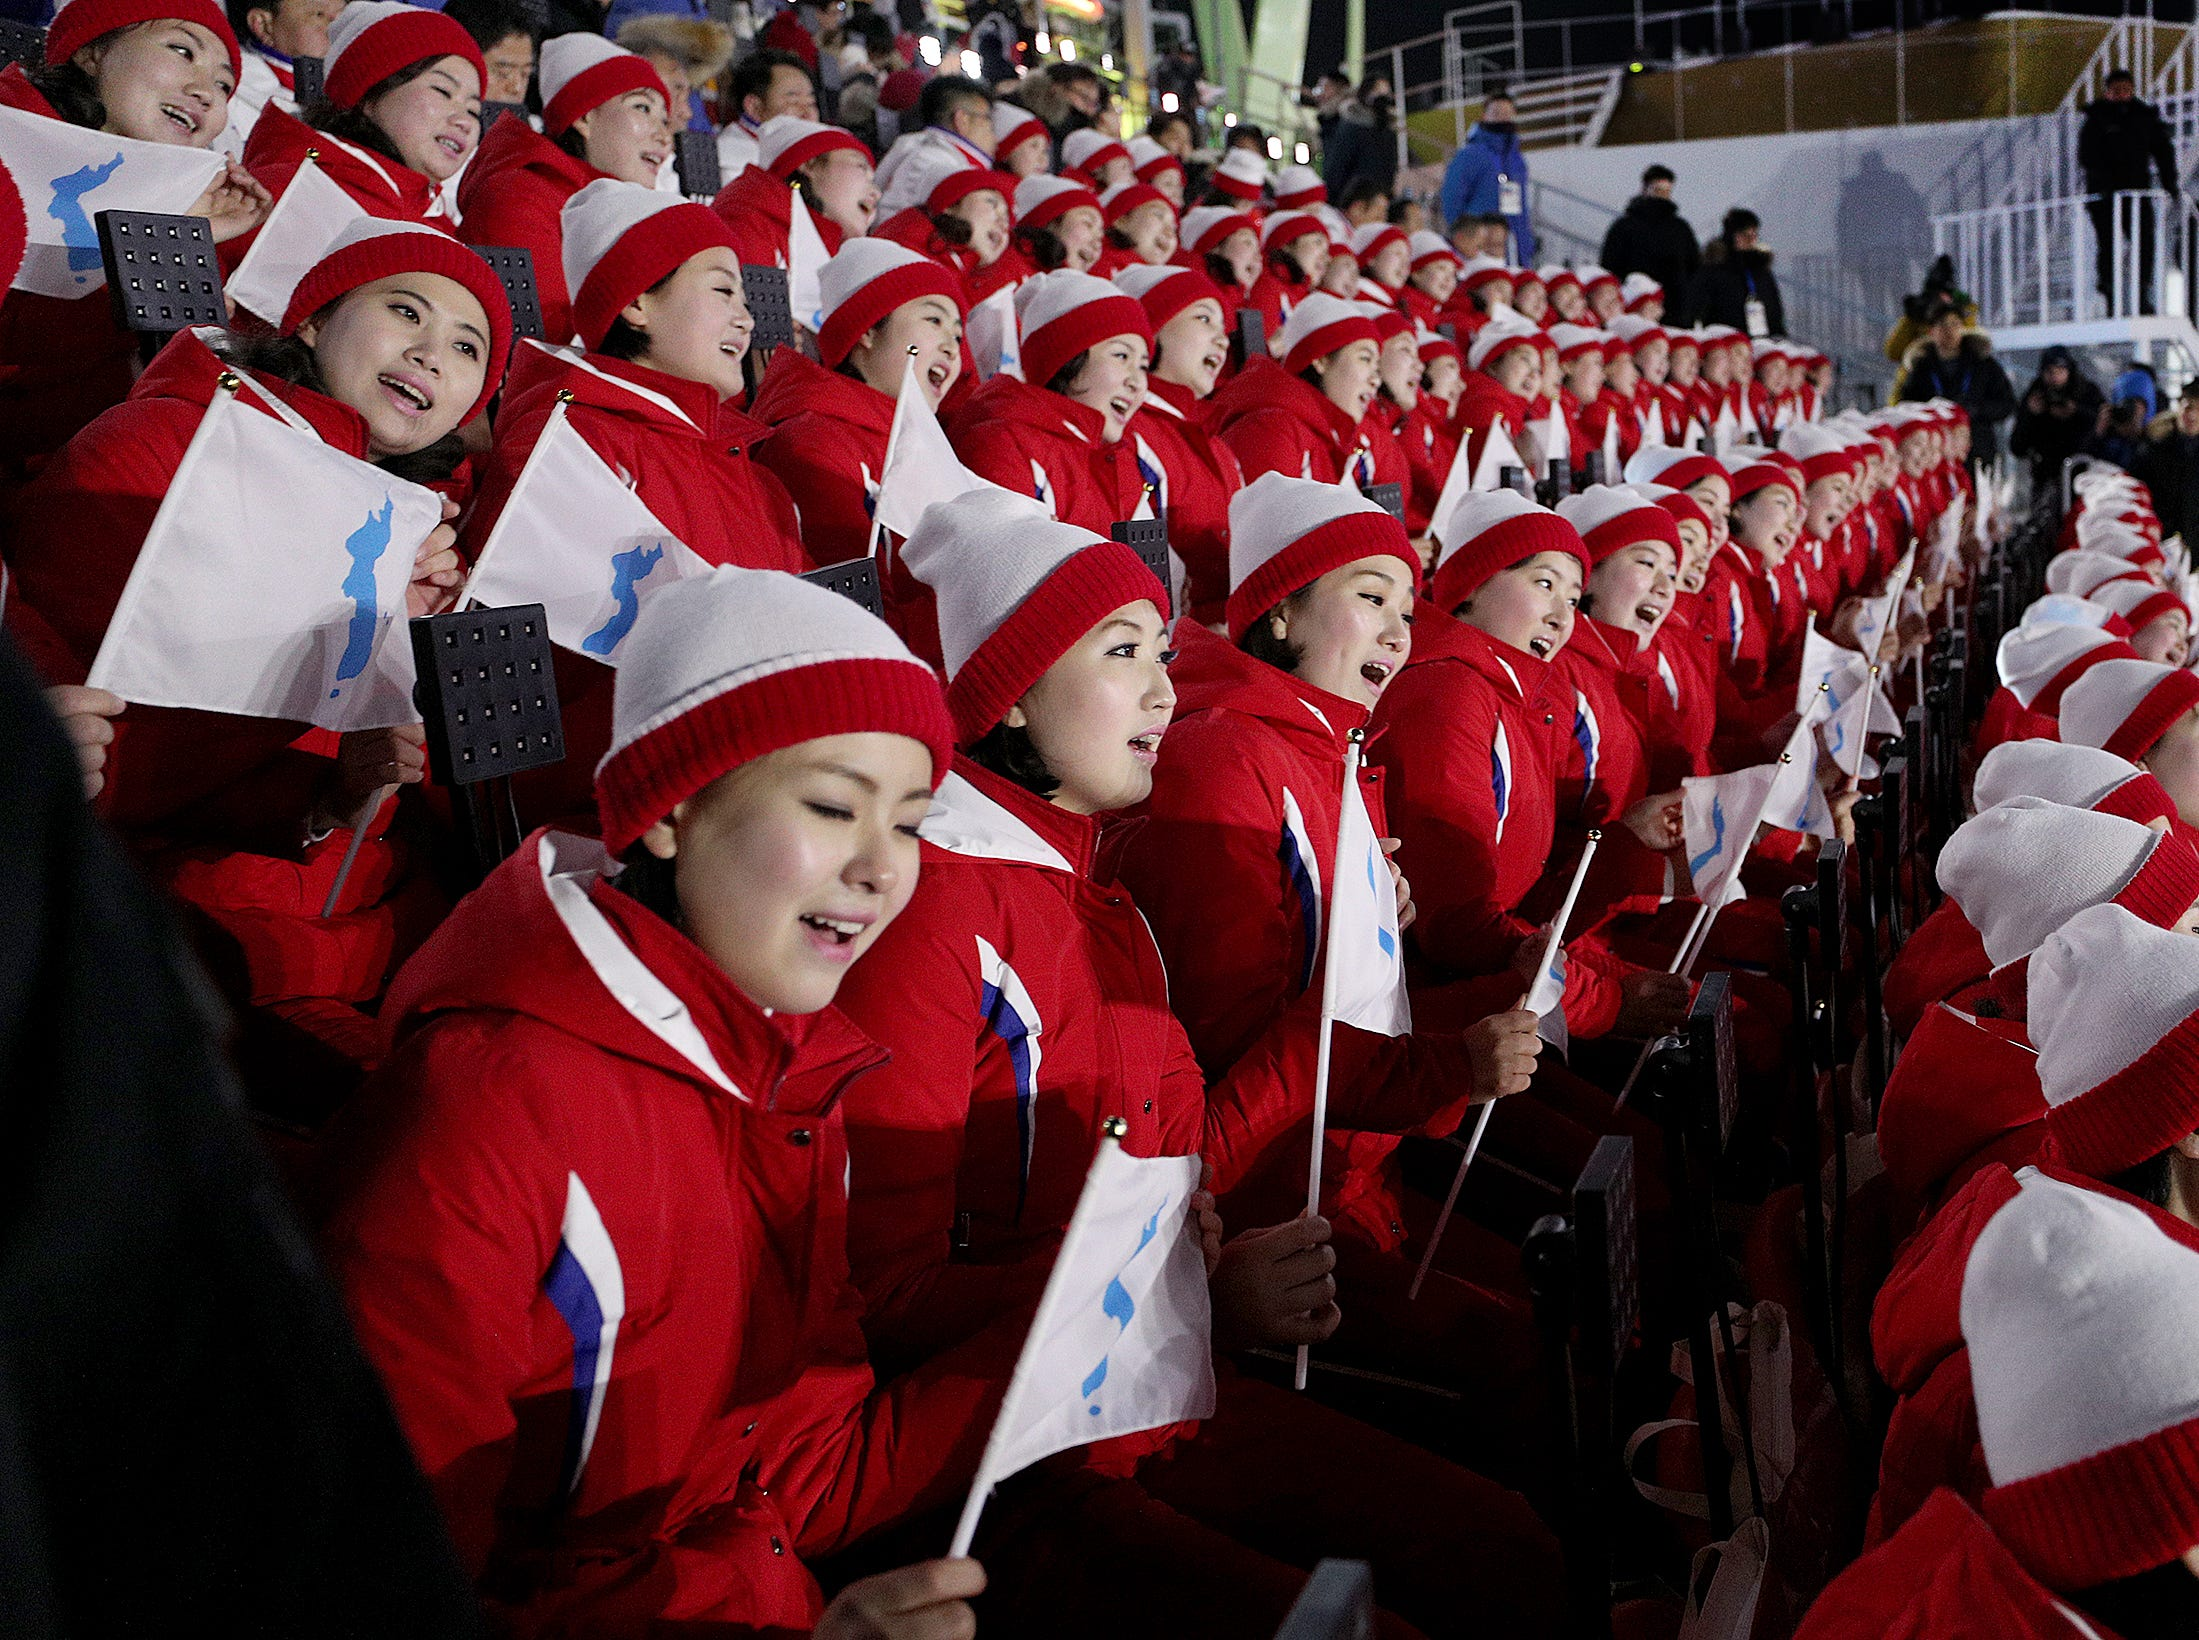 Feb 9, 2018; Pyeongchang, South Korea; North Korean cheerleaders at the opening ceremonies at the Pyeongchang 2018 Olympic Winter Games at Pyeongchang Olympic Stadium. Mandatory Credit: Matt Kryger-USA TODAY Sports